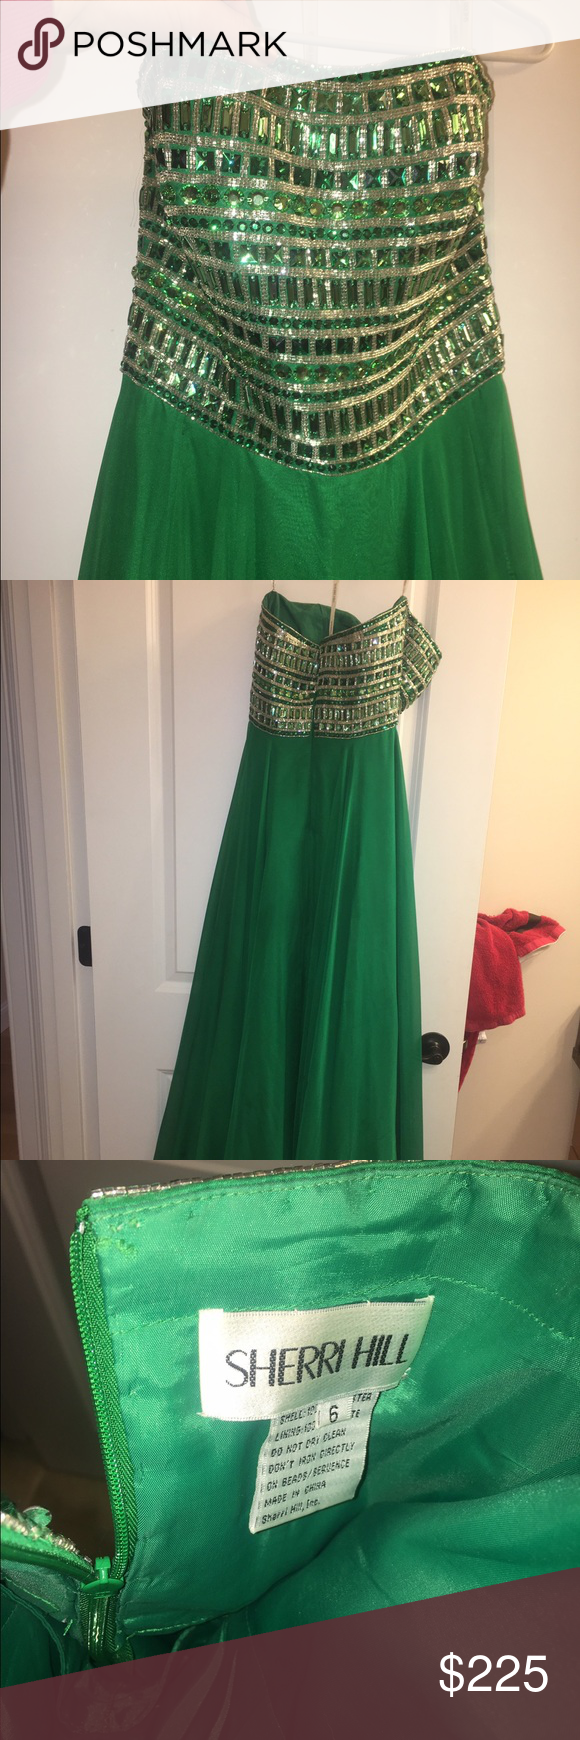 Sherri hill size beautiful green prom dress dress prom emeralds